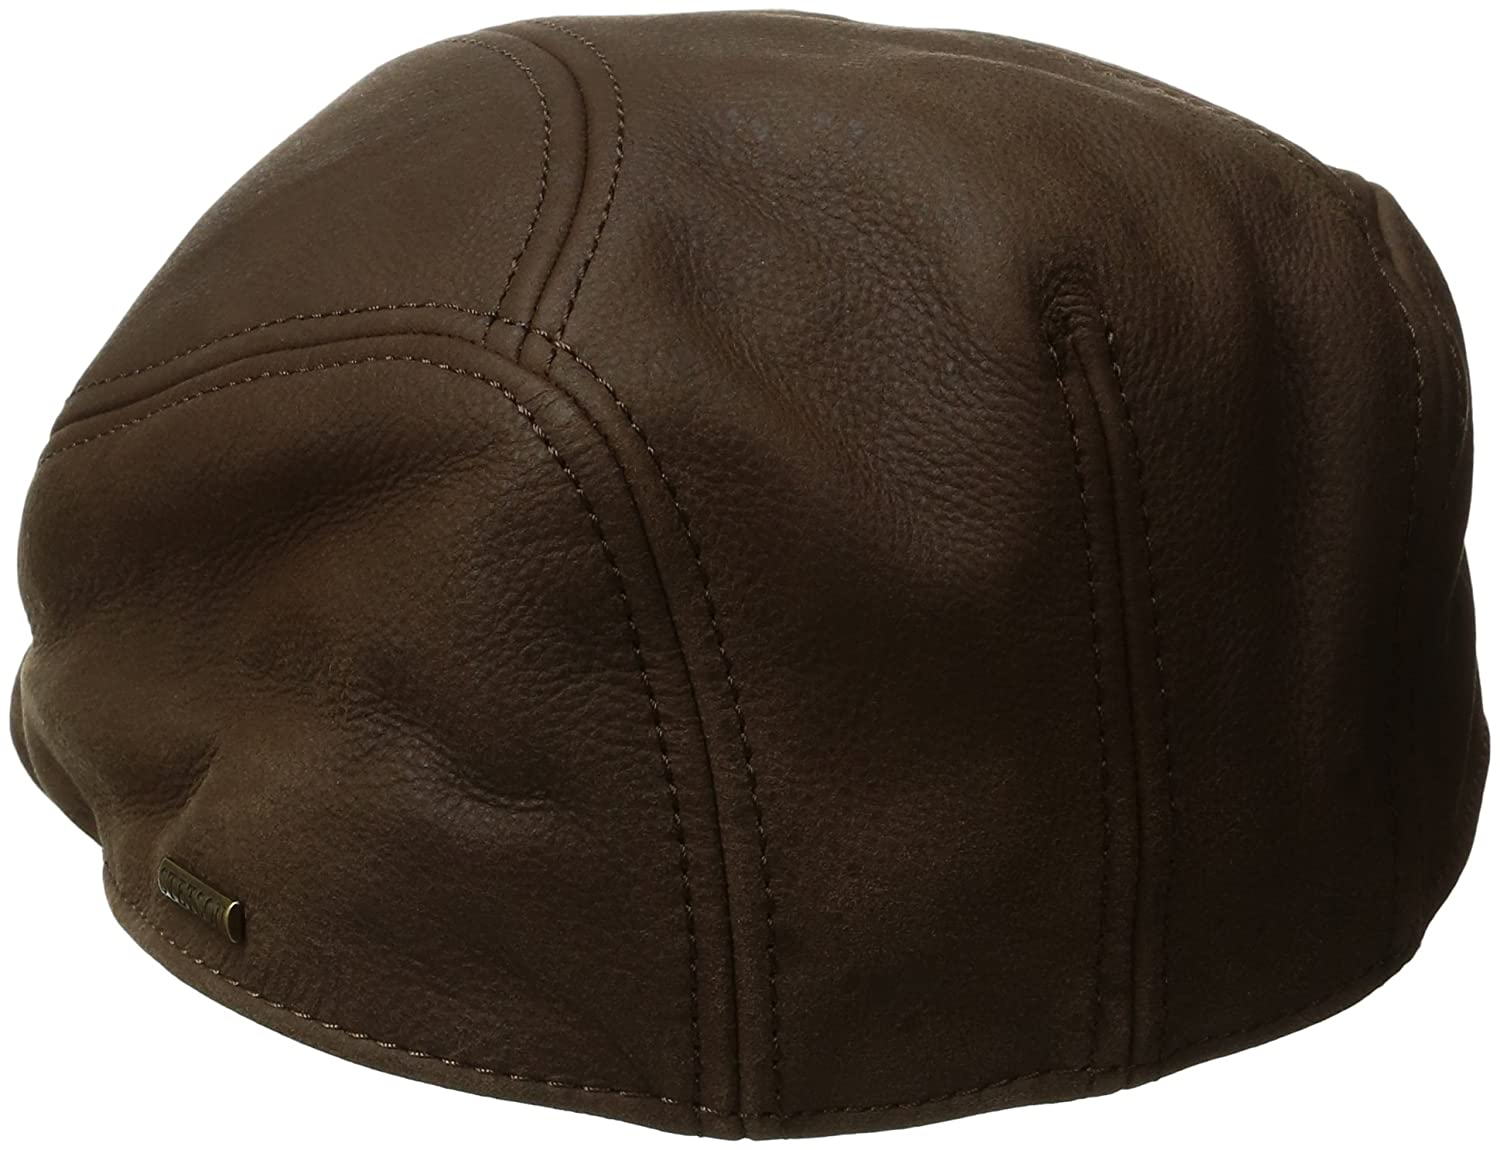 3a99b0a8b2c60 Stetson Men s Oily Timber Leather Ivy Cap at Amazon Men s Clothing store